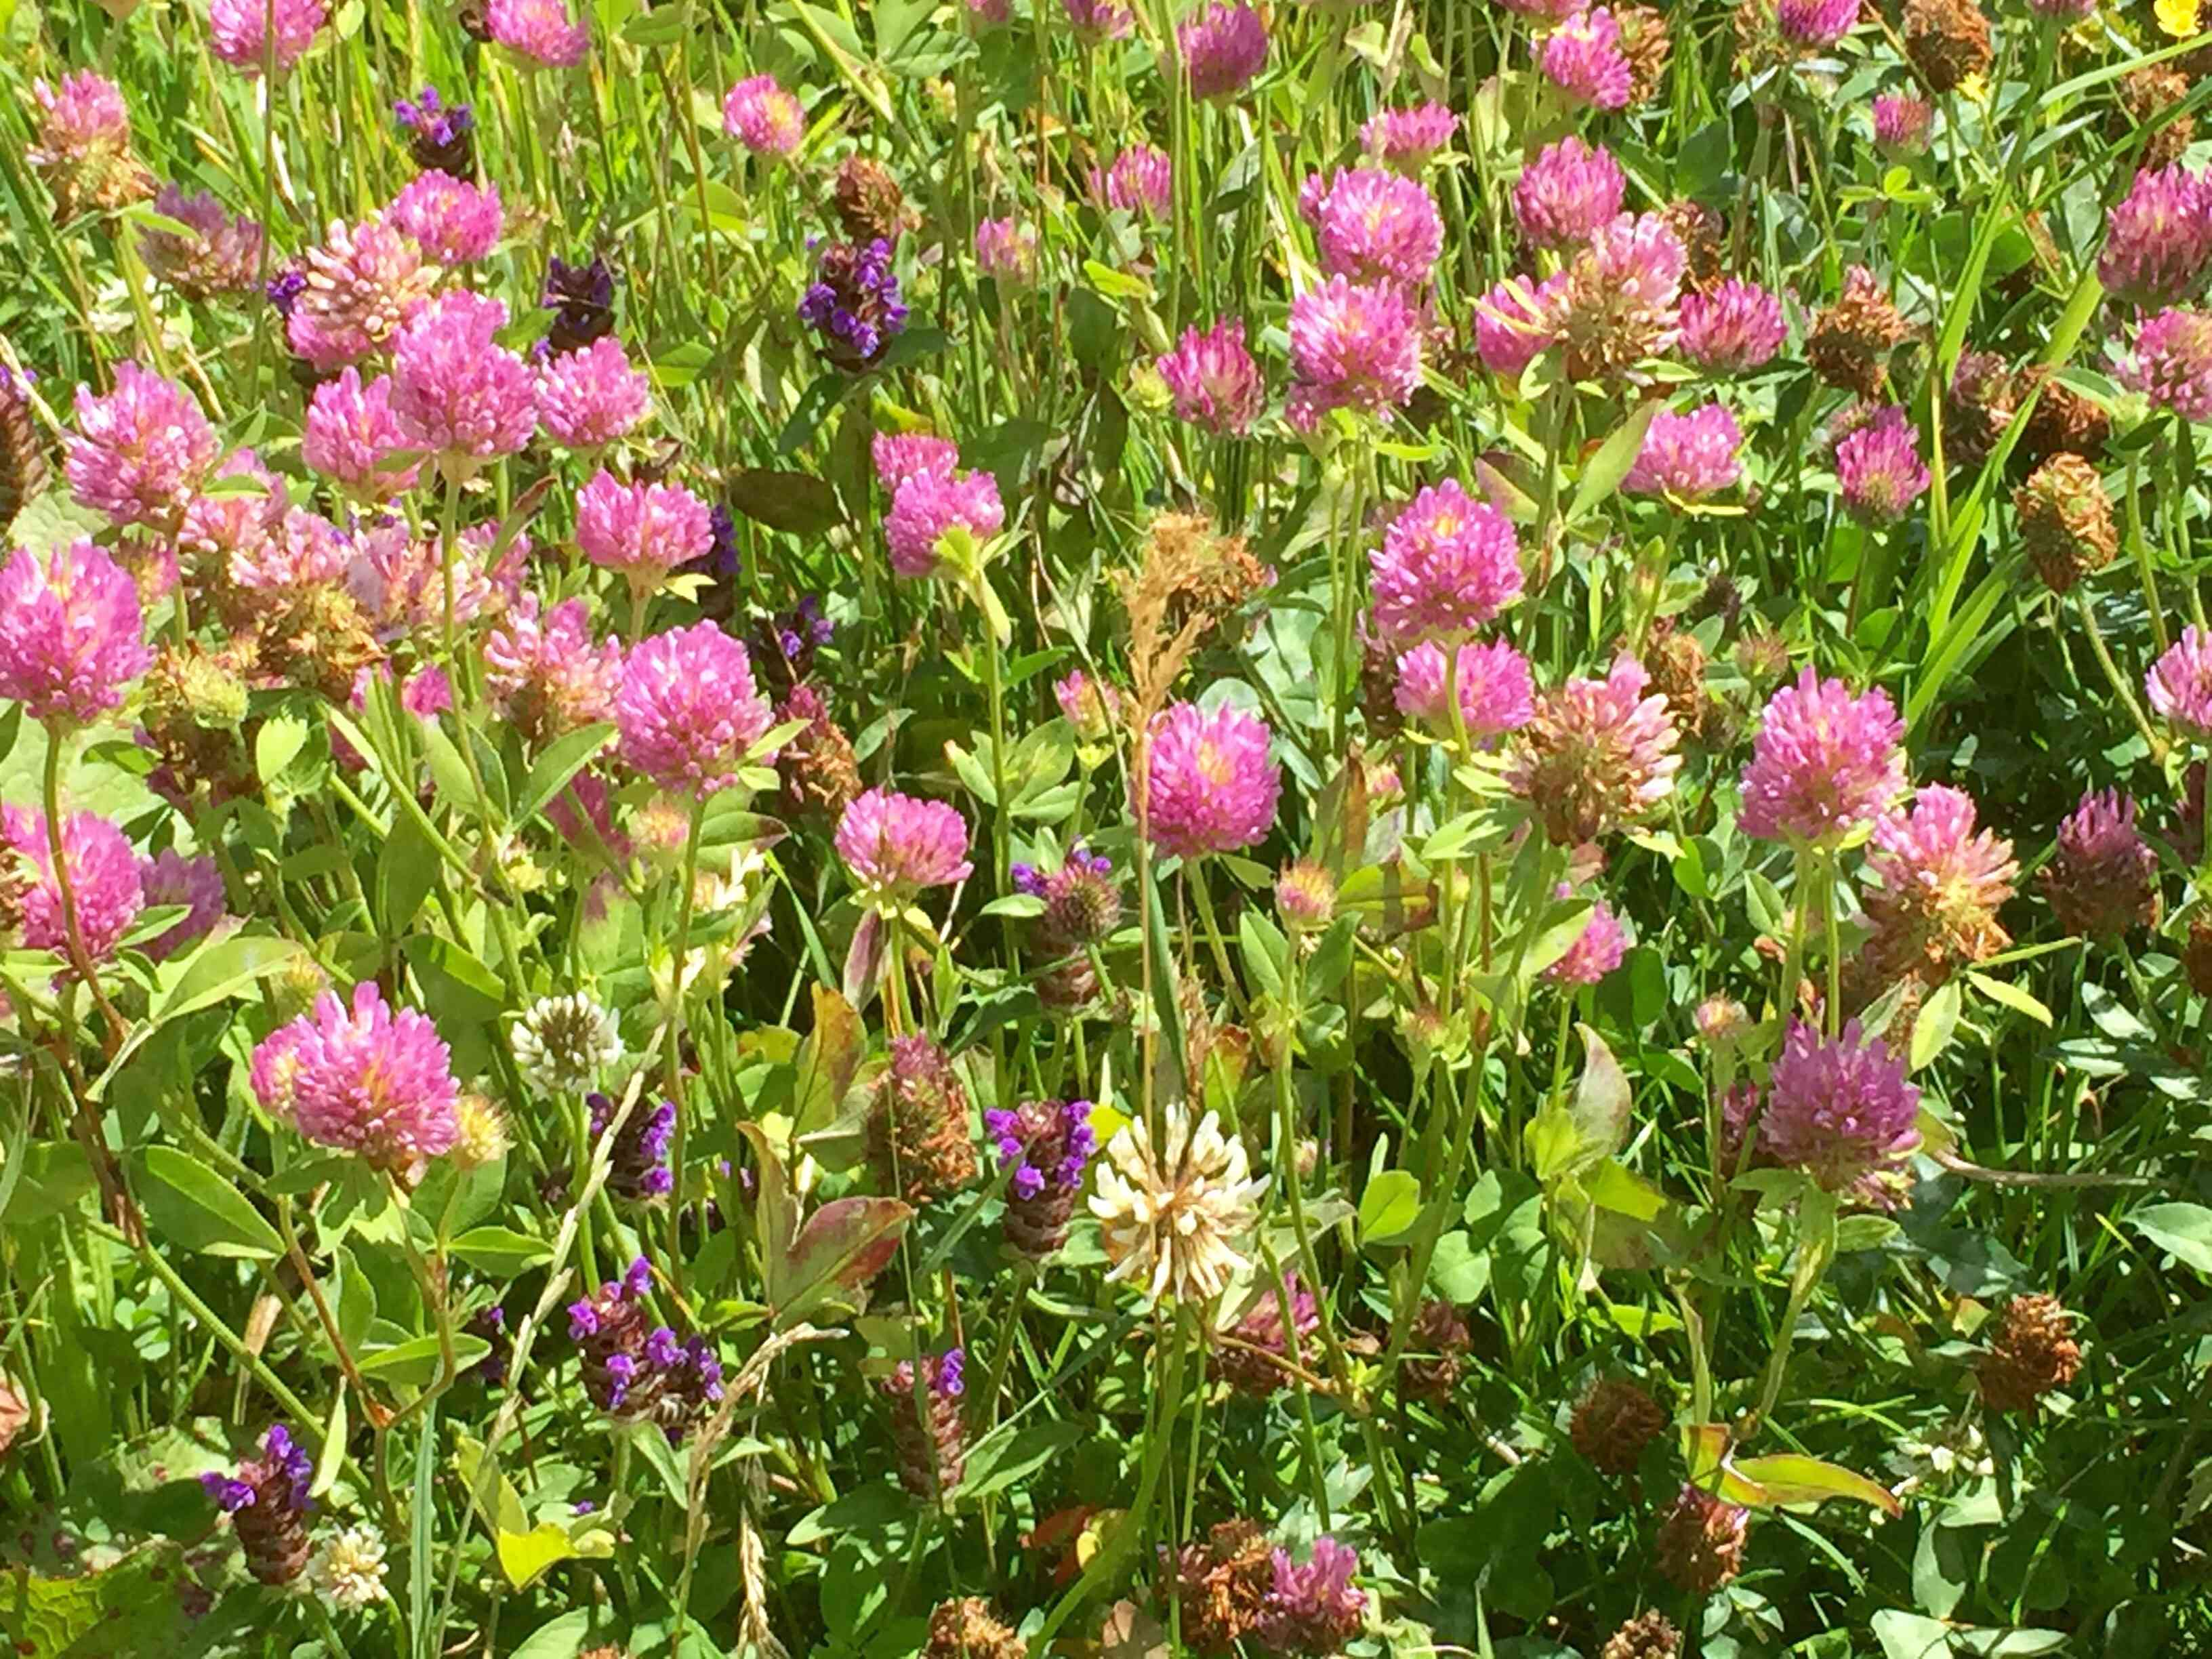 Red Clover Blooming In Lawn